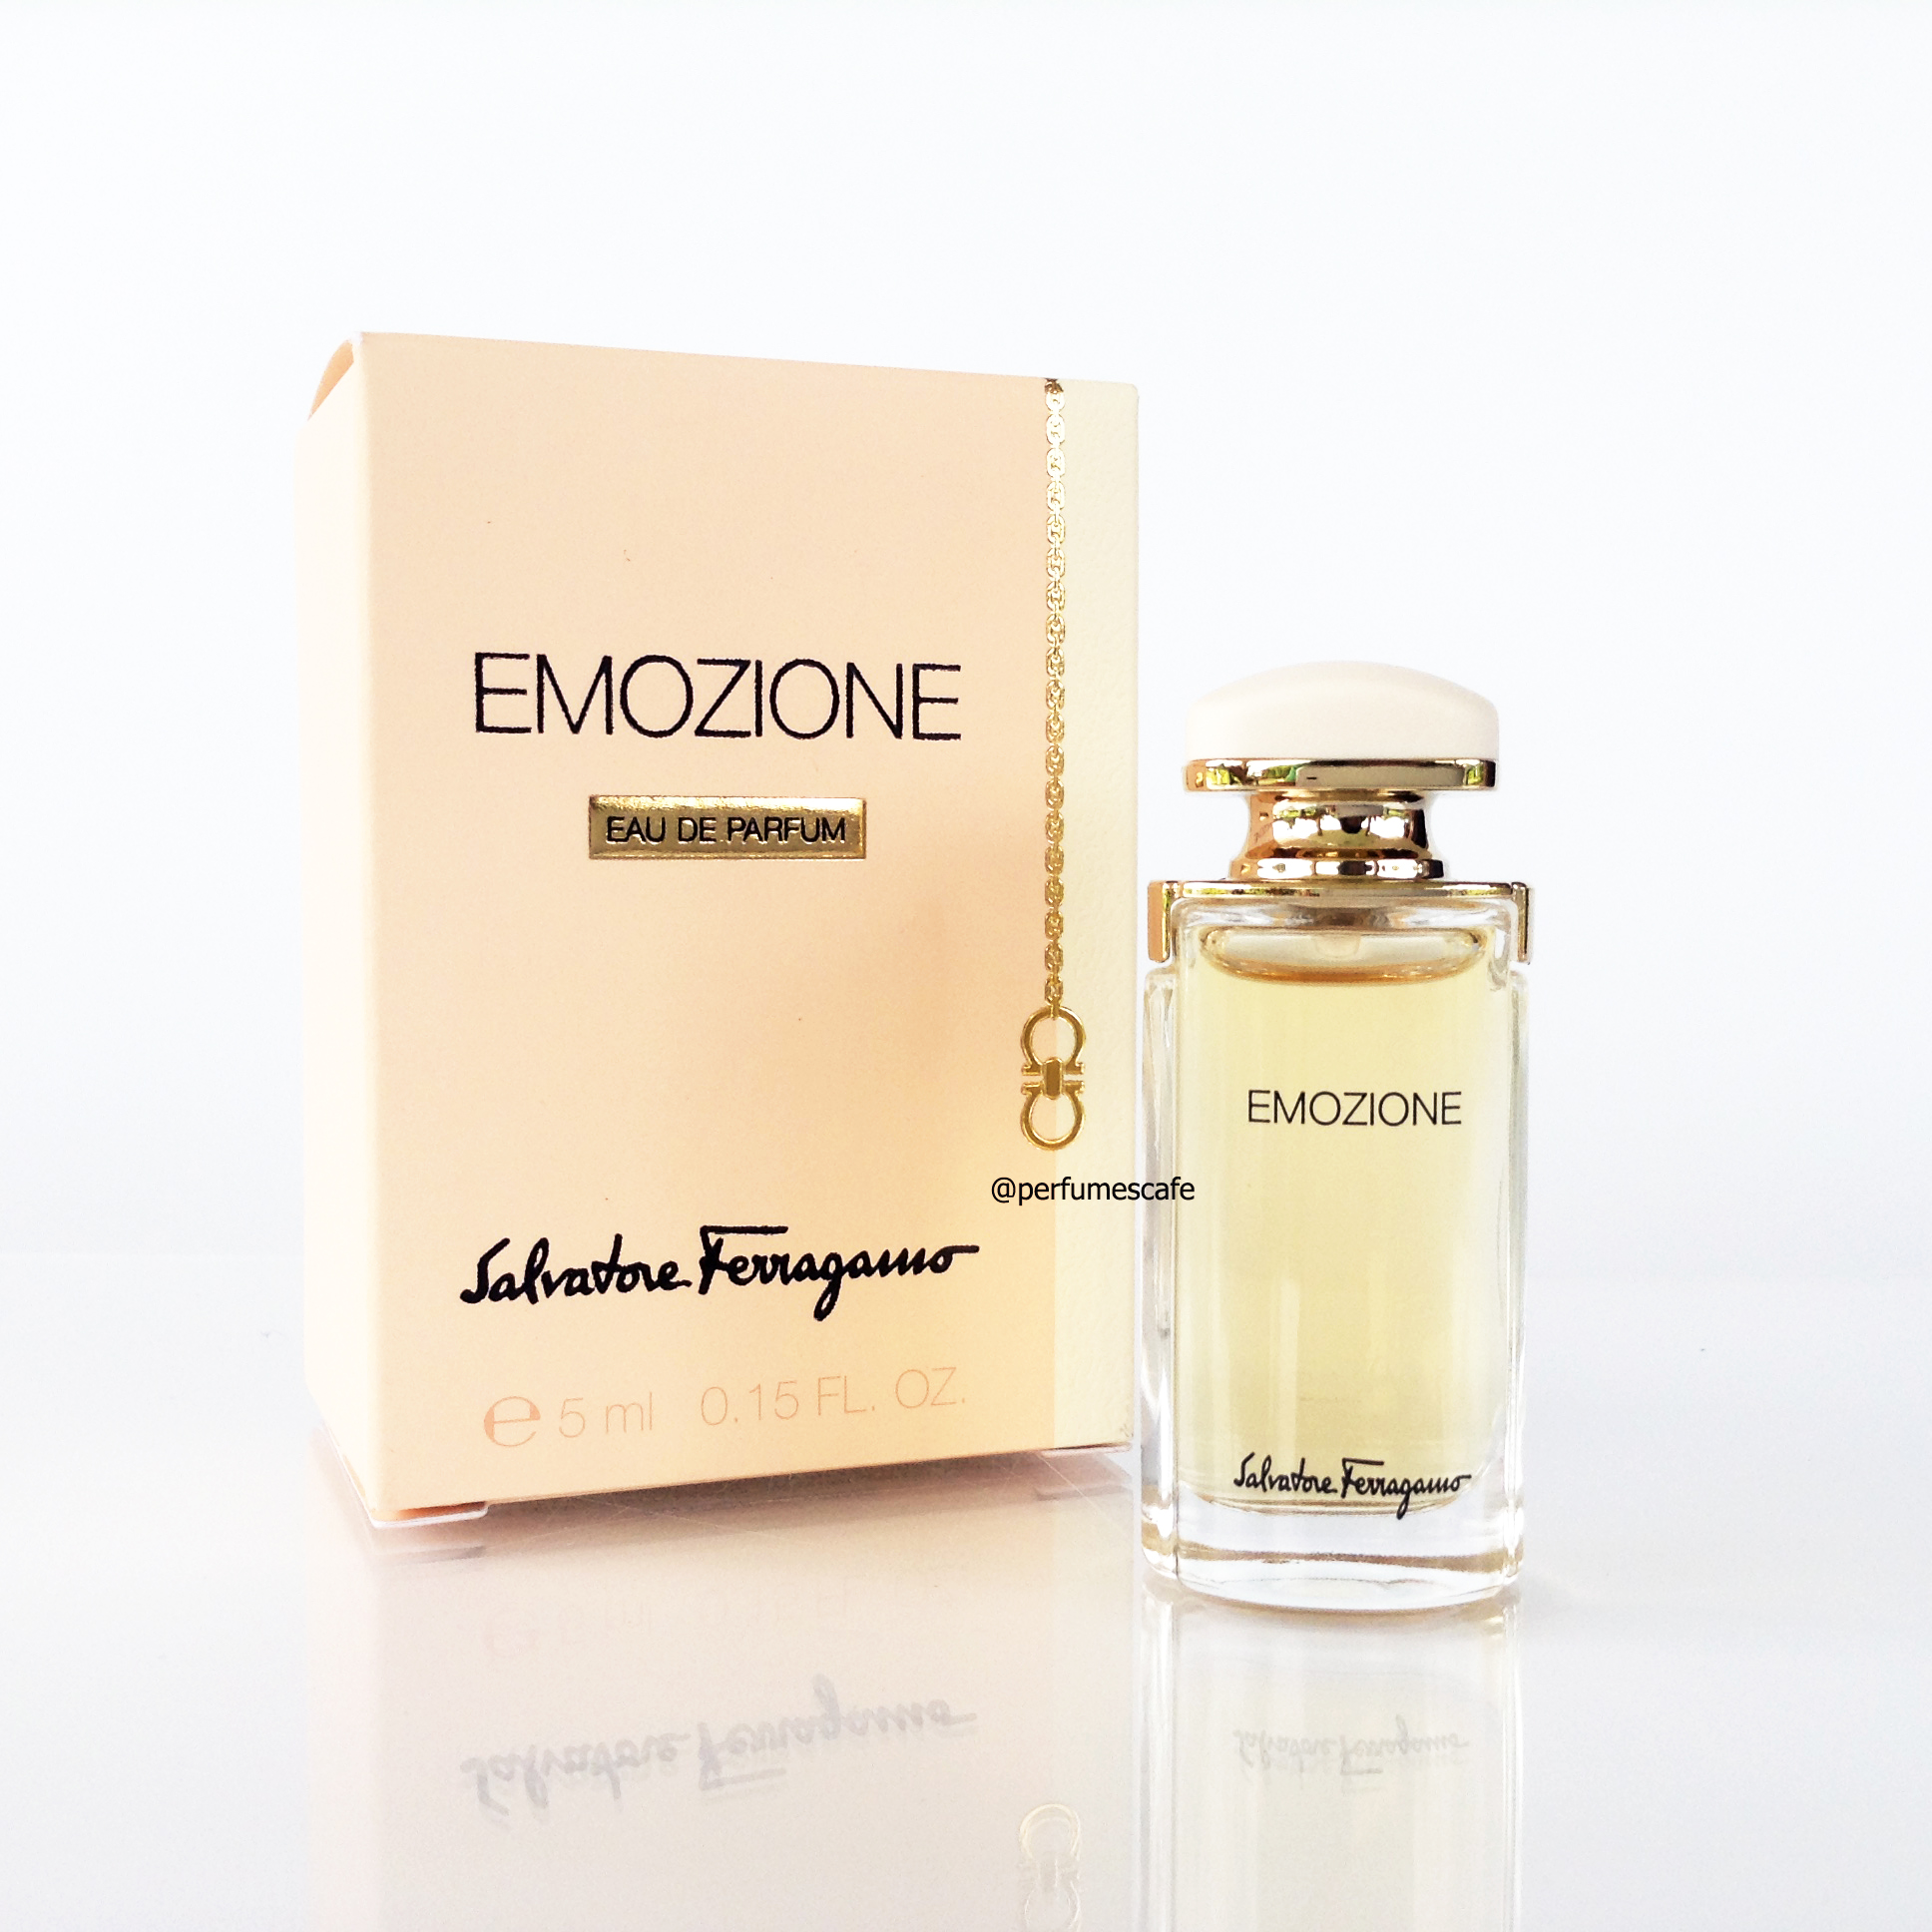 Salvatore Ferragamo Emozione Eau de Parfum for women ขนาด 5ml. แบบแต้ม